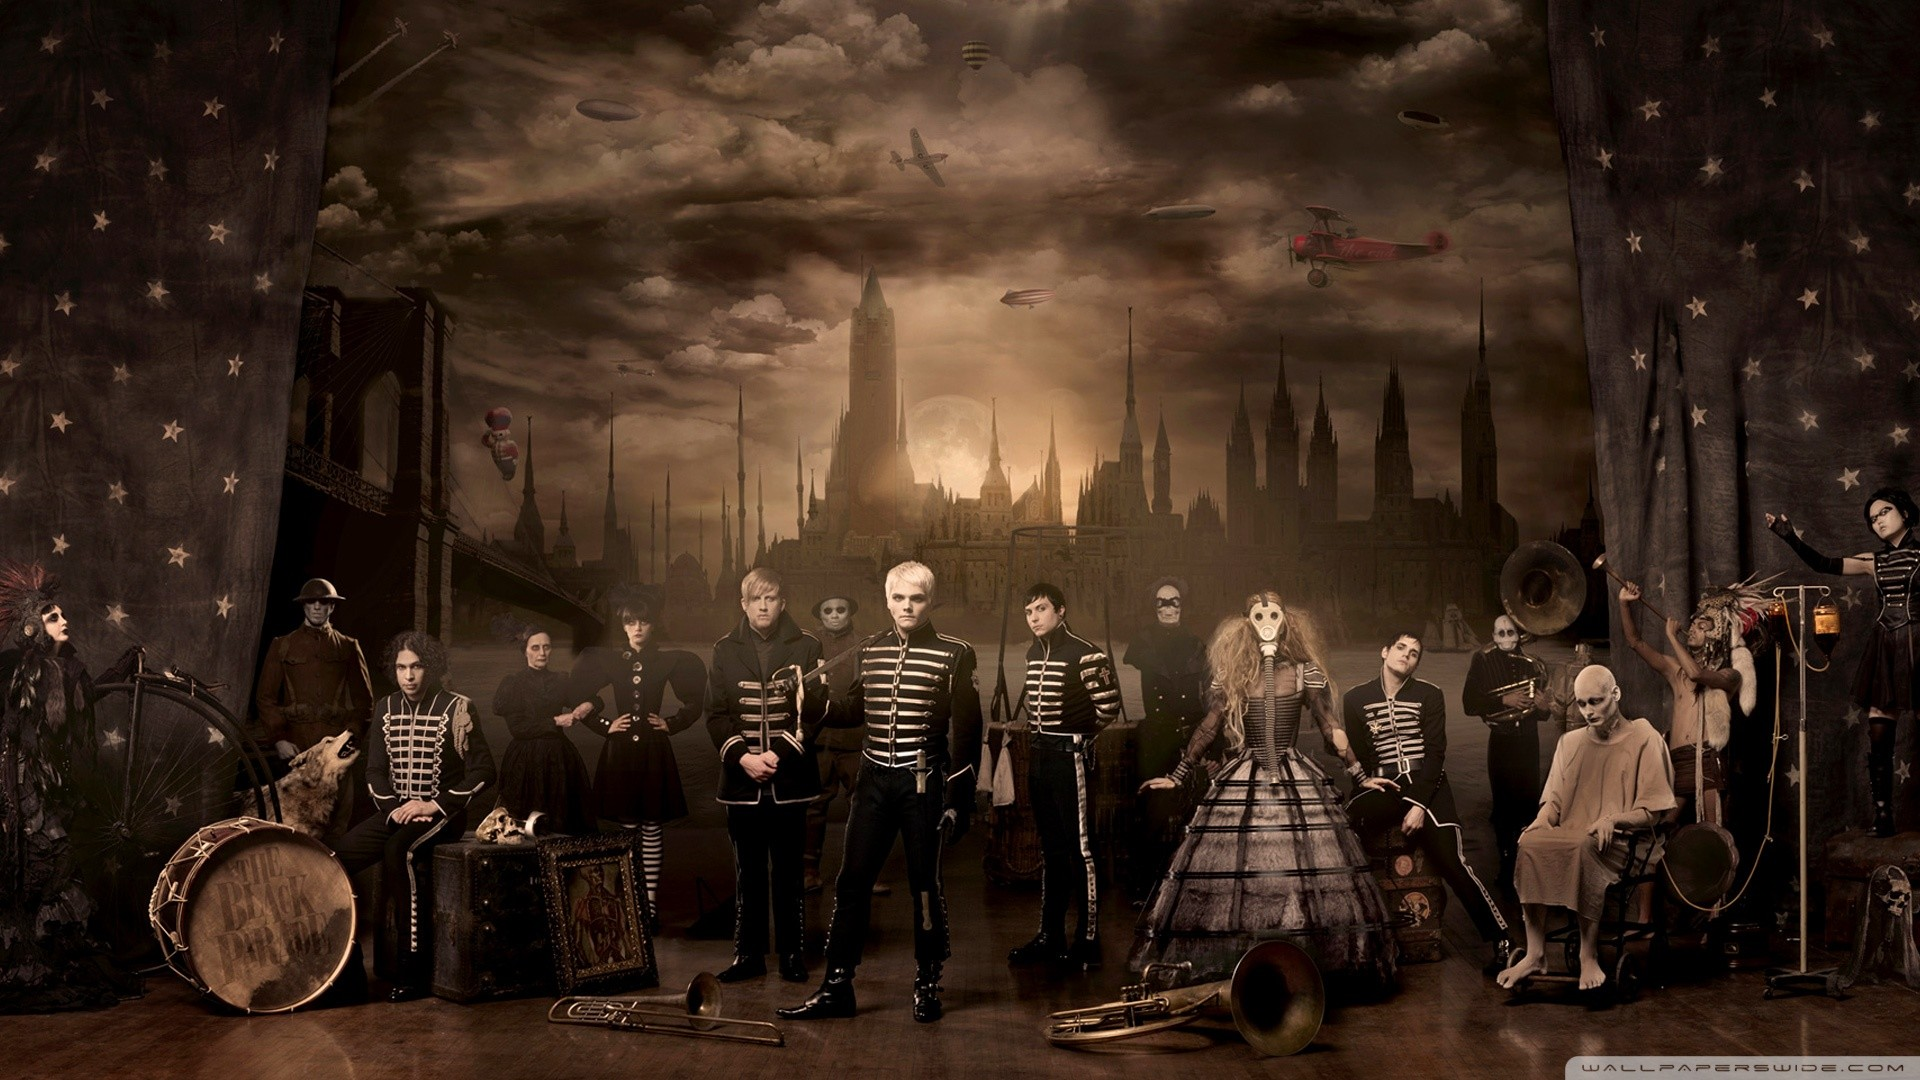 The Black Parade Wallpaper 66 images 1920x1080